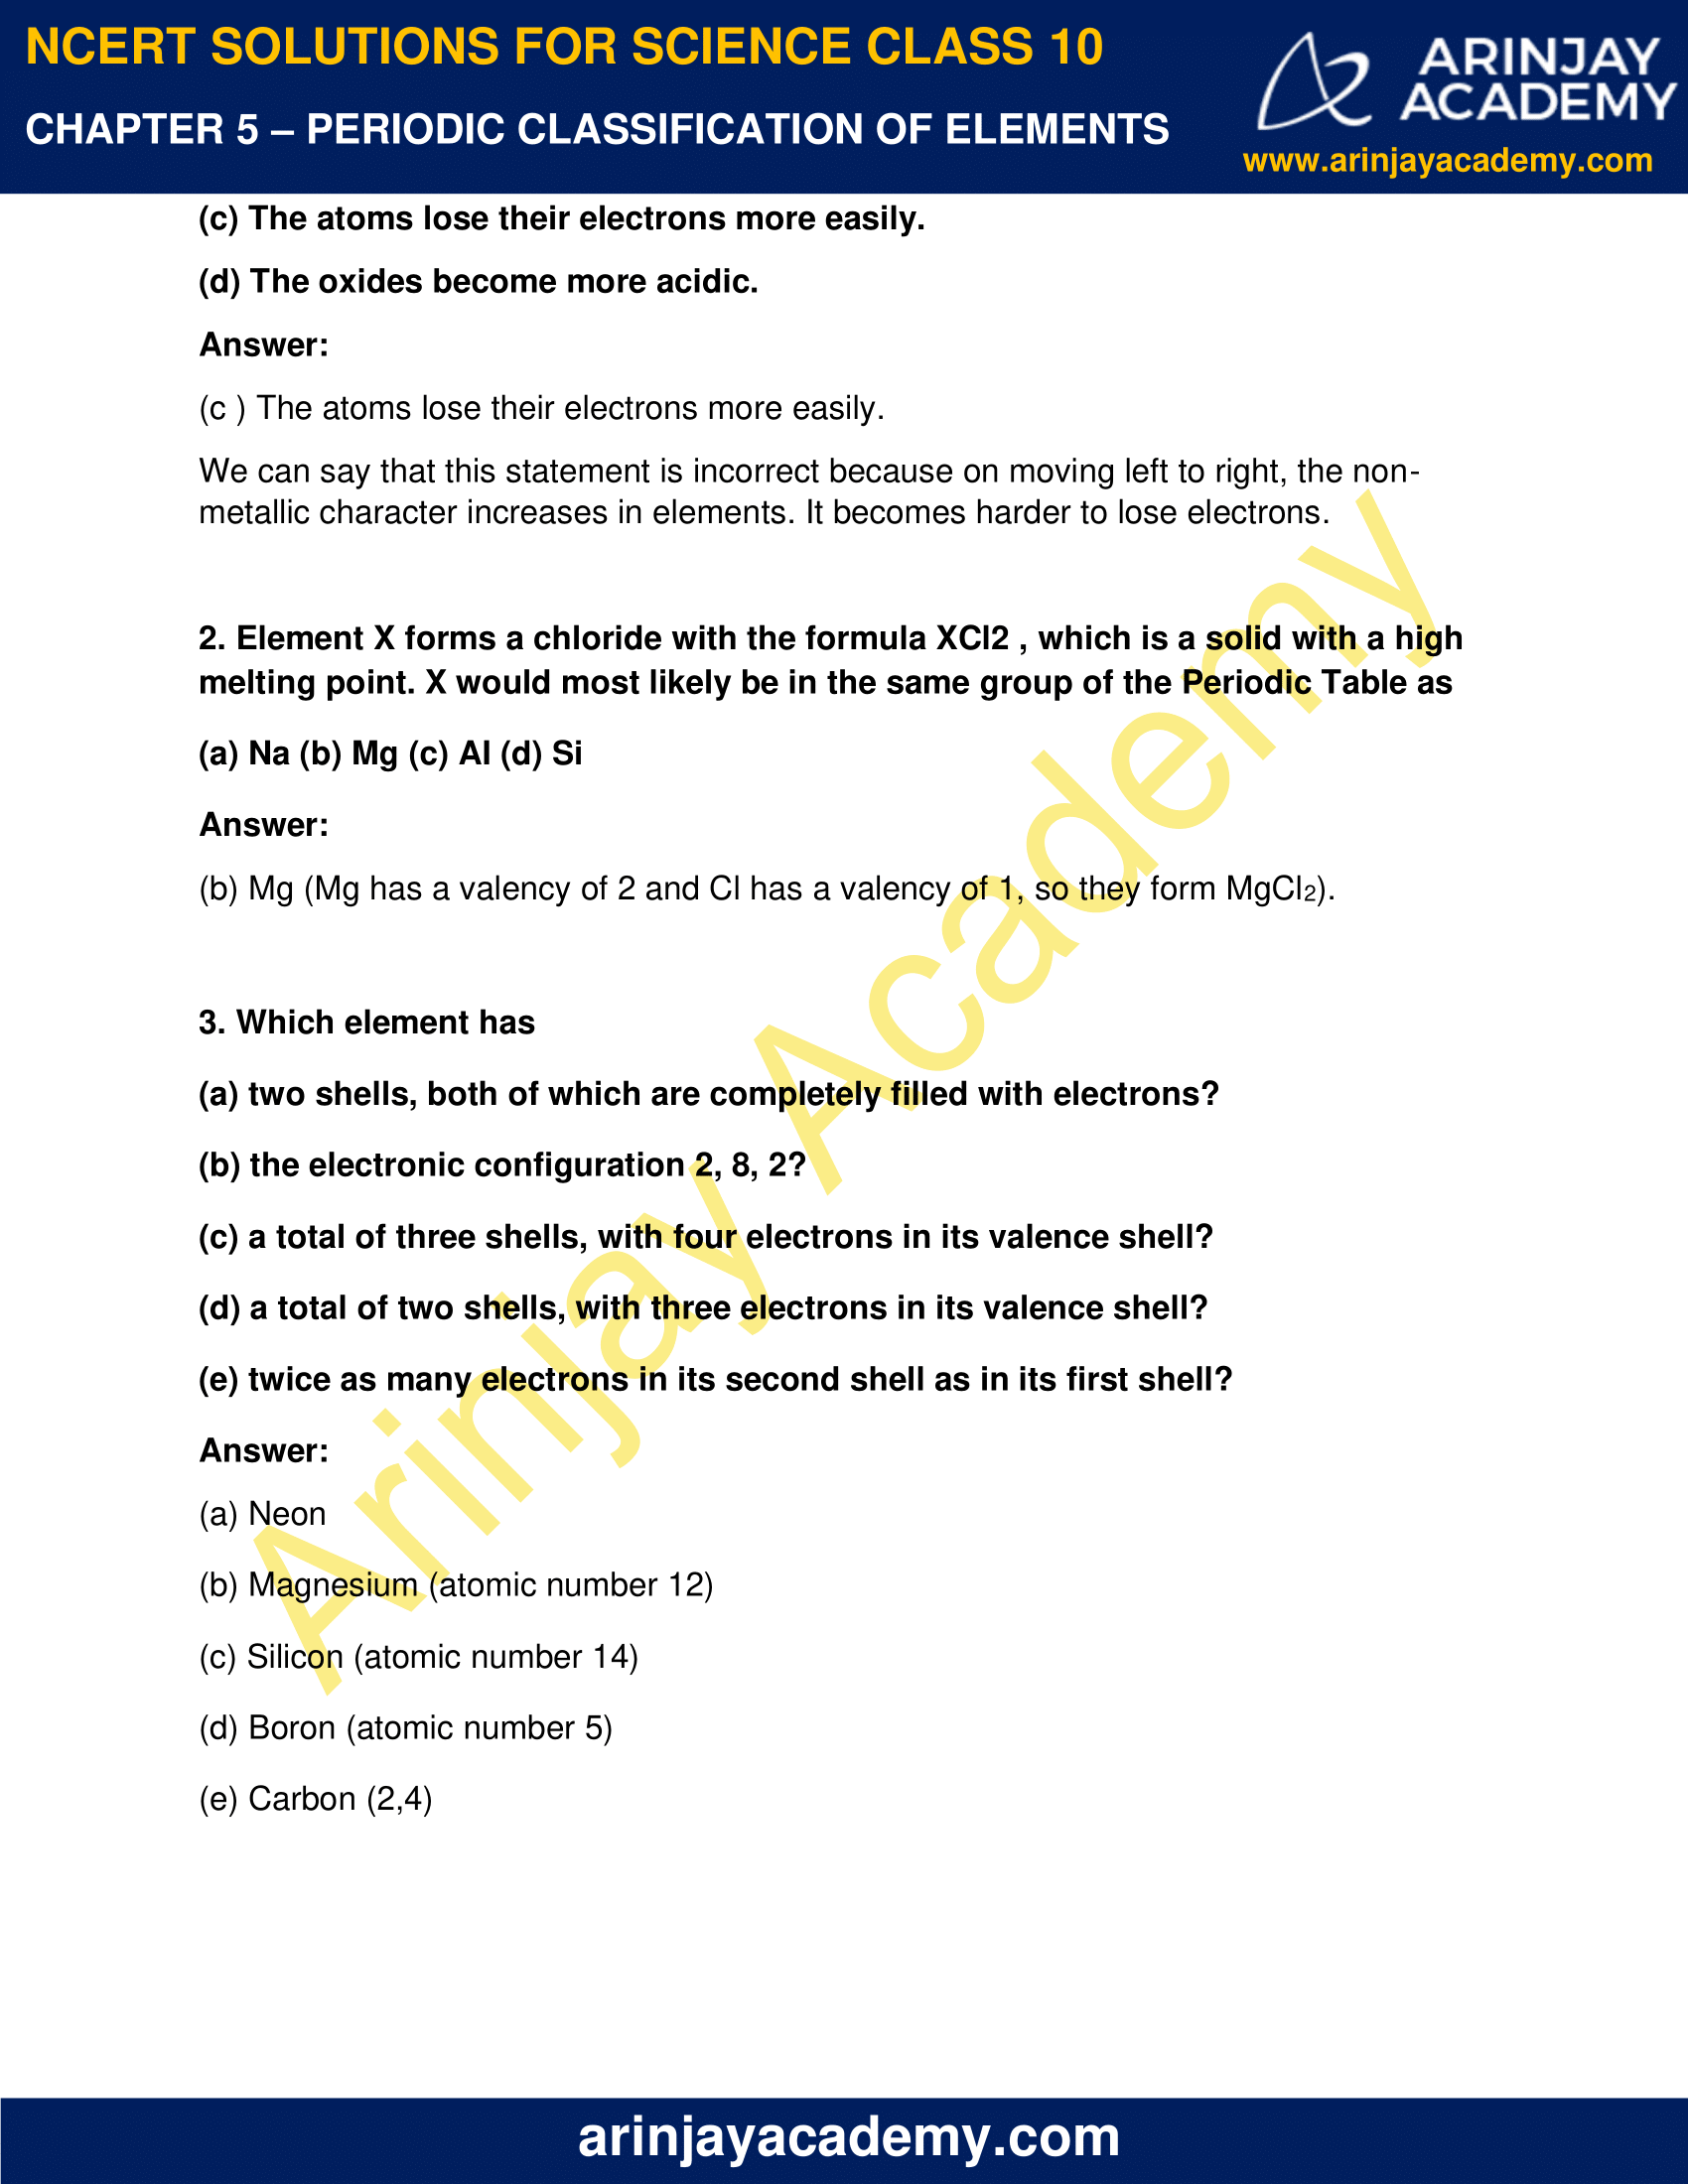 NCERT Solutions for Class 10 Science Chapter 5 image 5